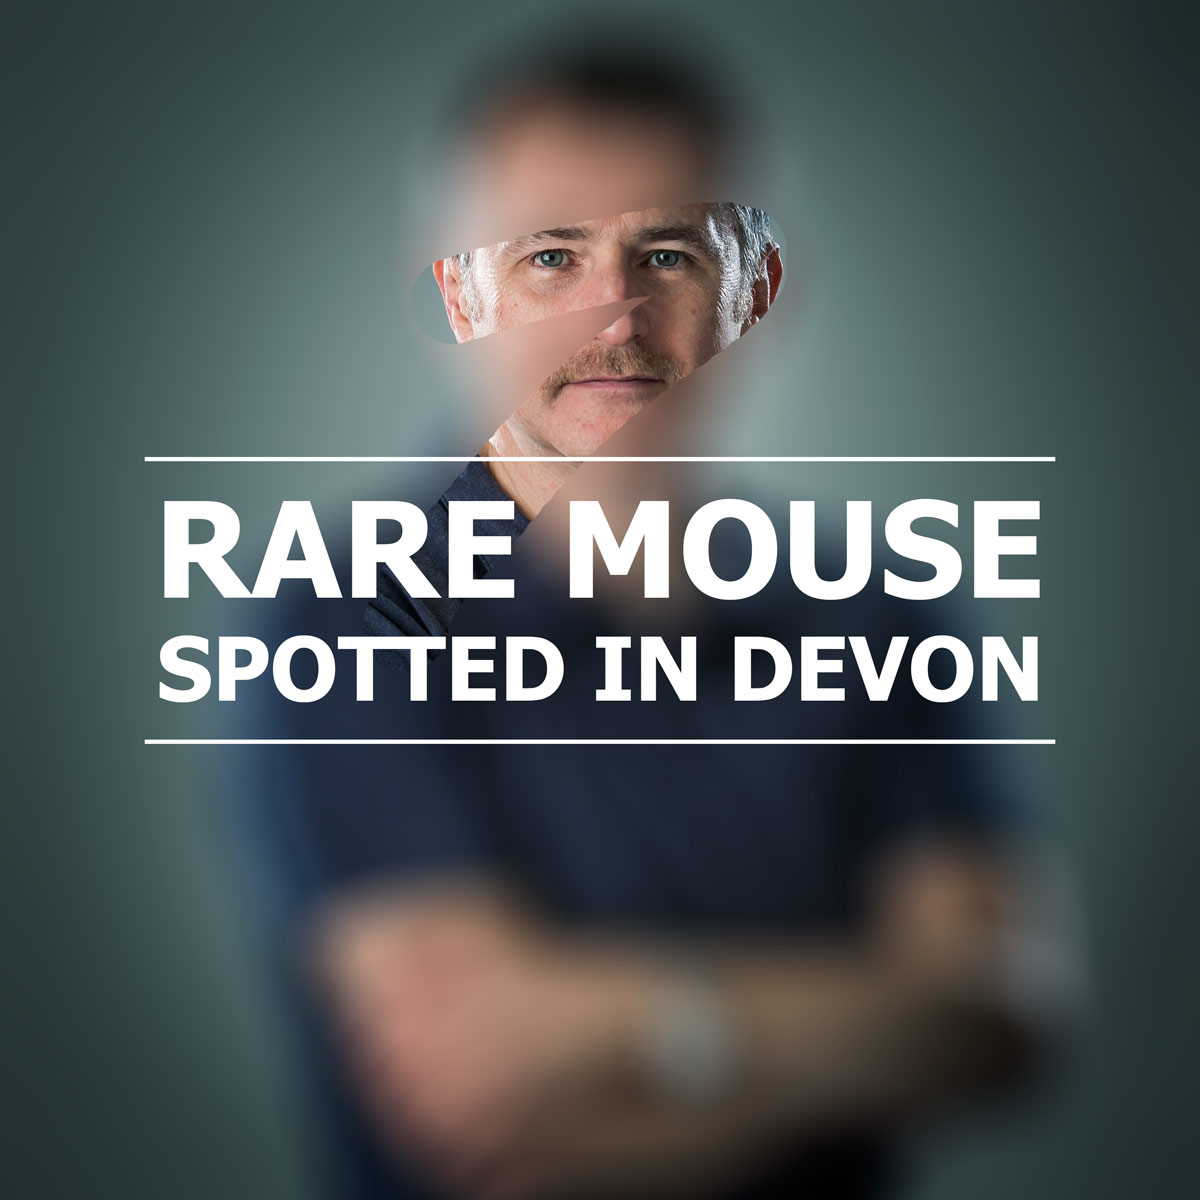 Rare mouse spotted in Devon. It must be Movember 2014.